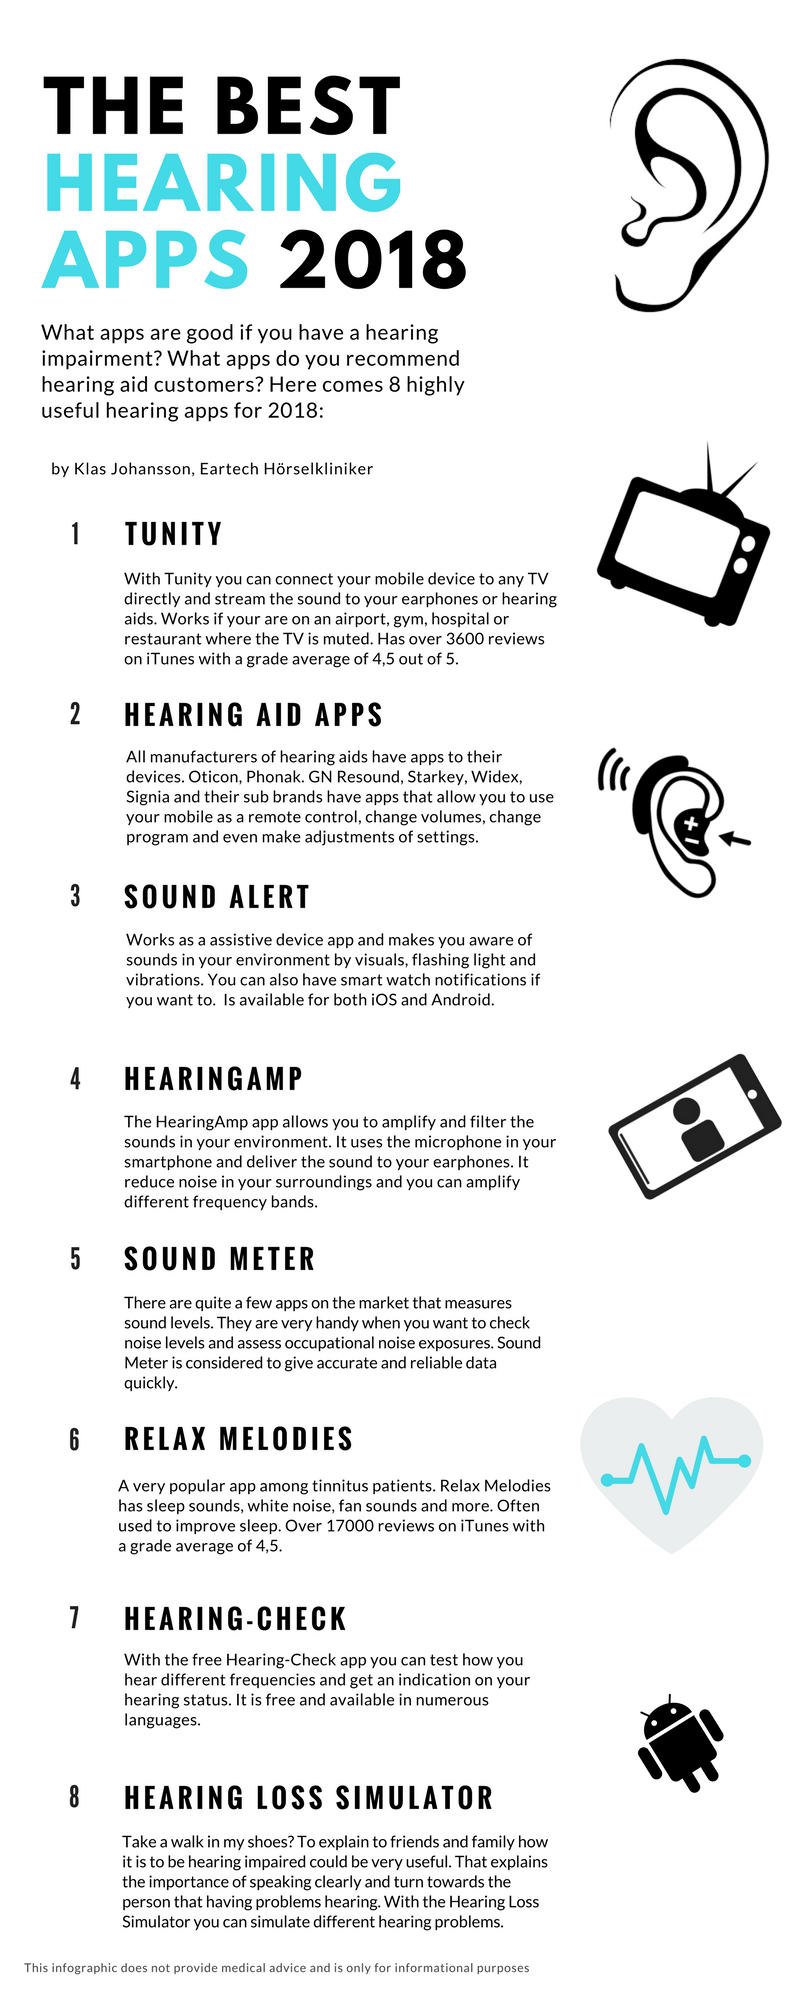 Best hearing apps 2018 #infographic